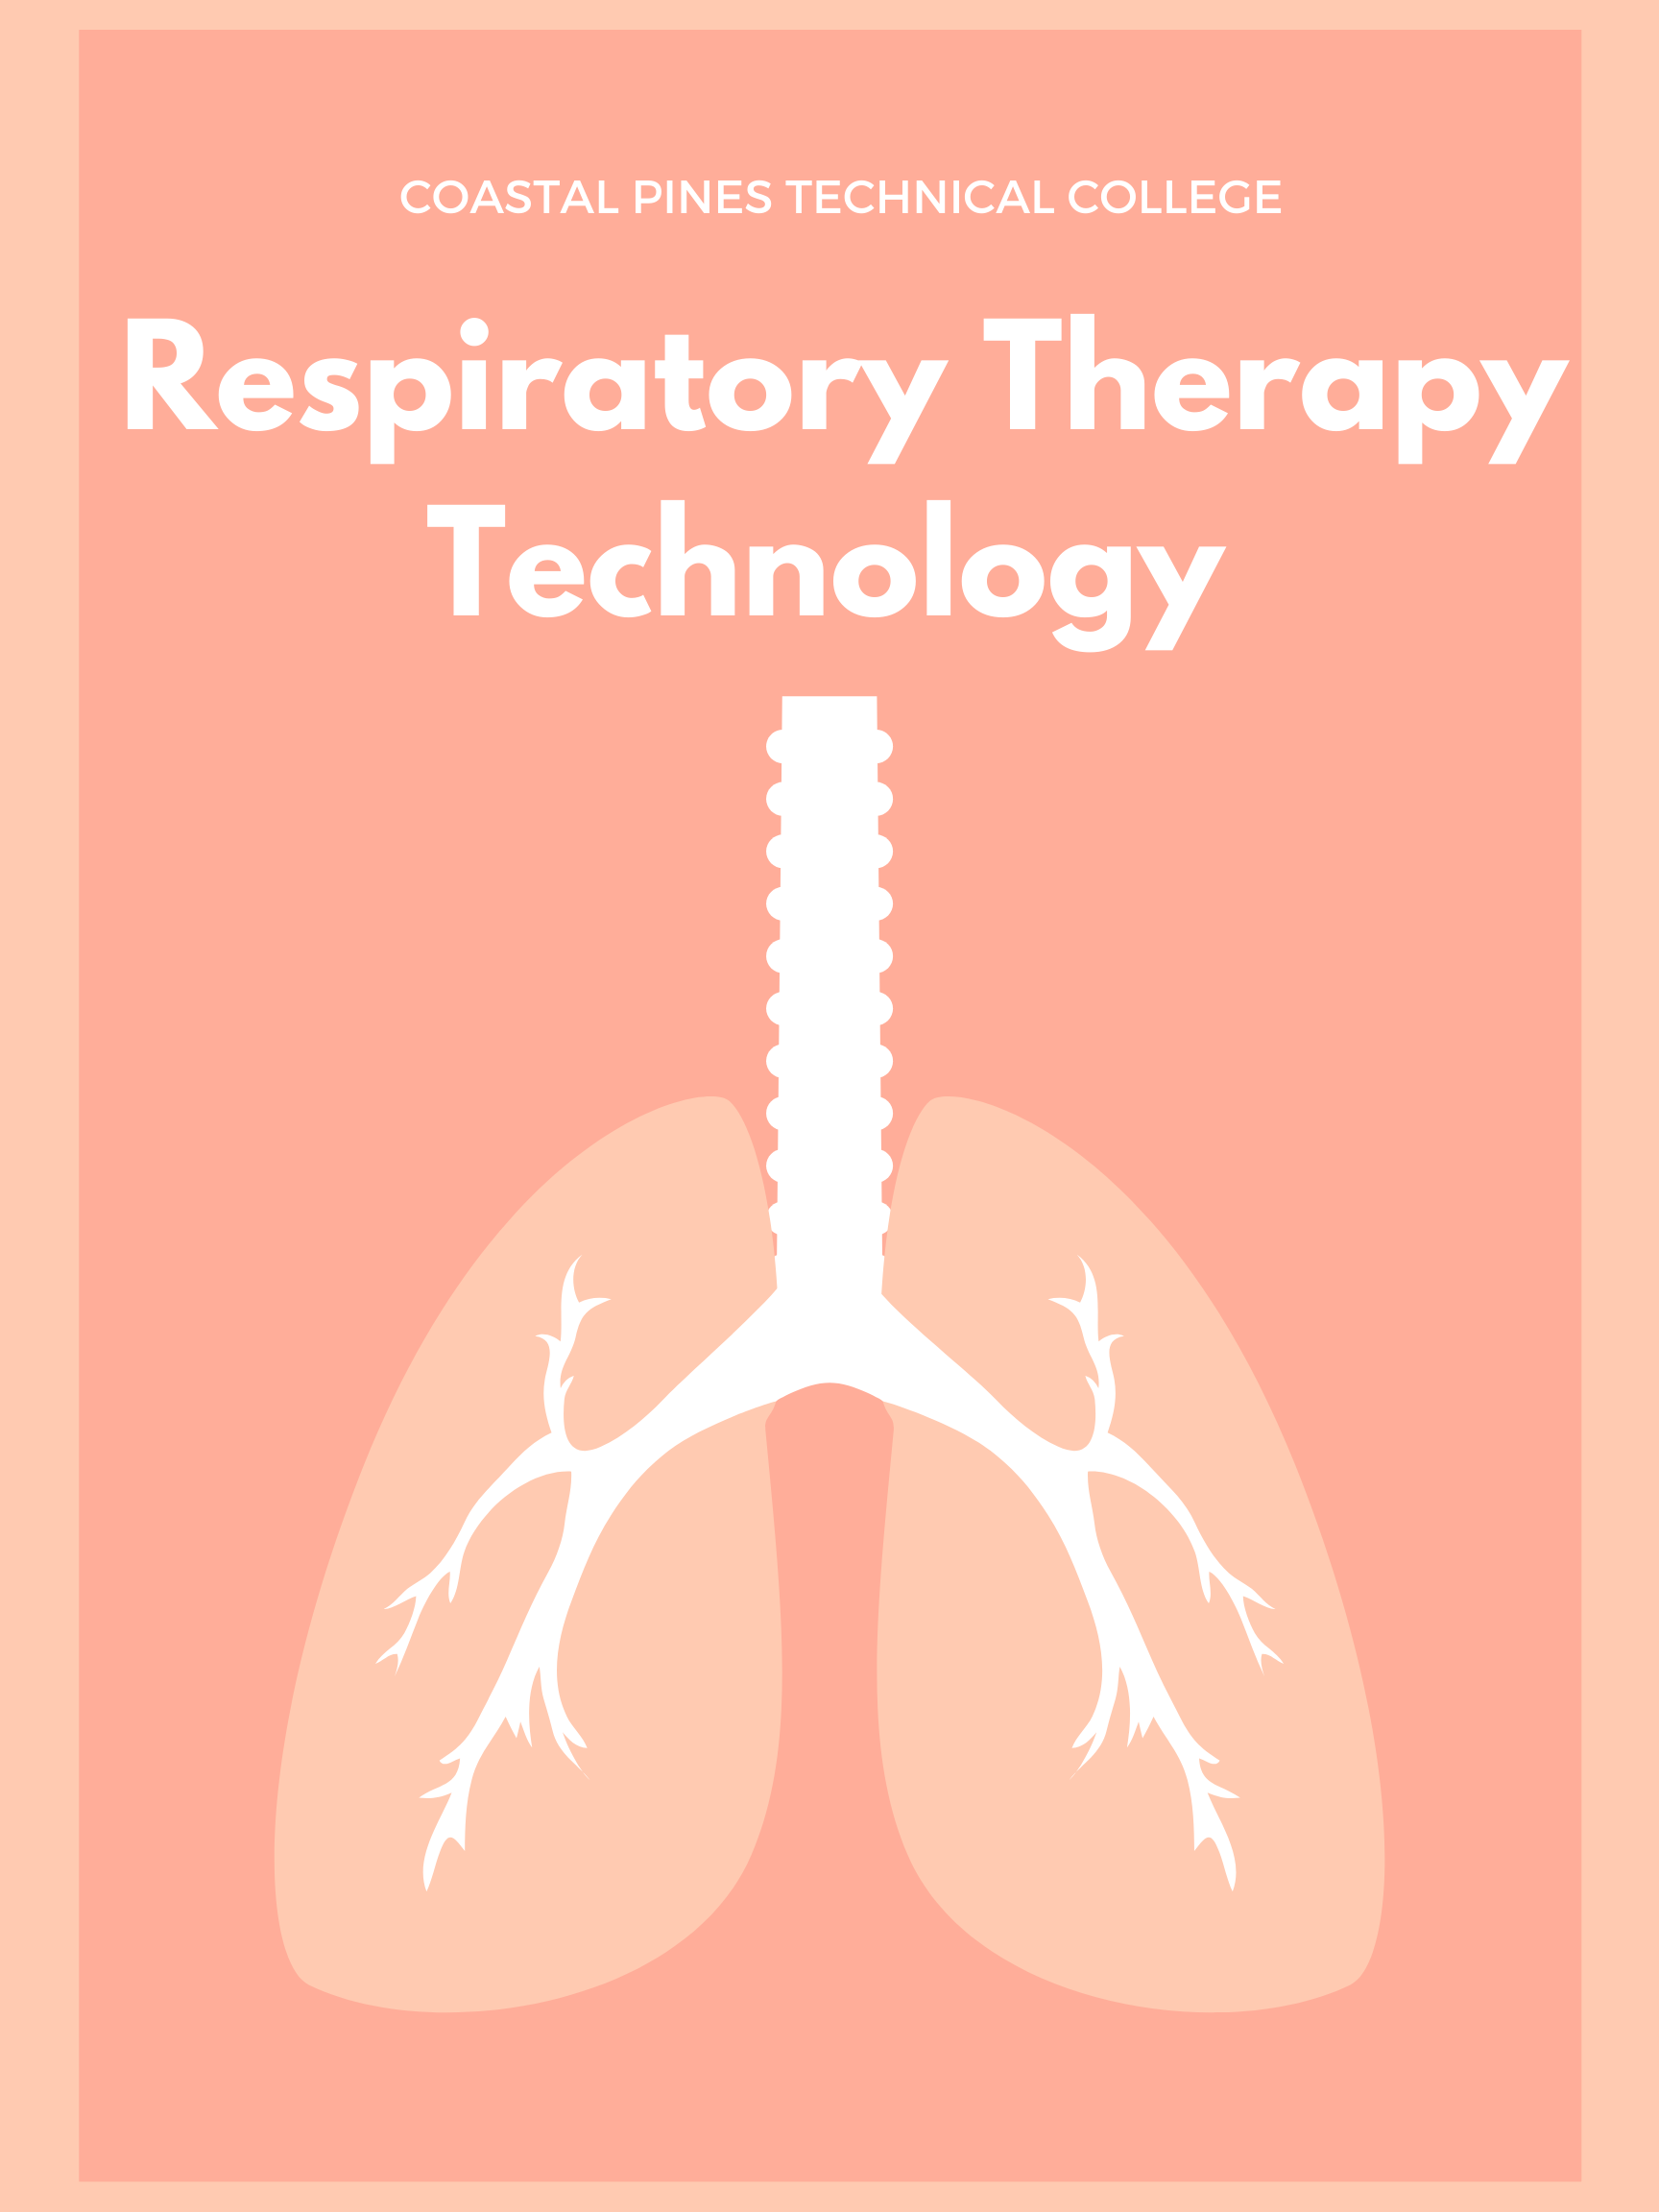 Coastal Pines Technical College Respiratory Therapy Technology